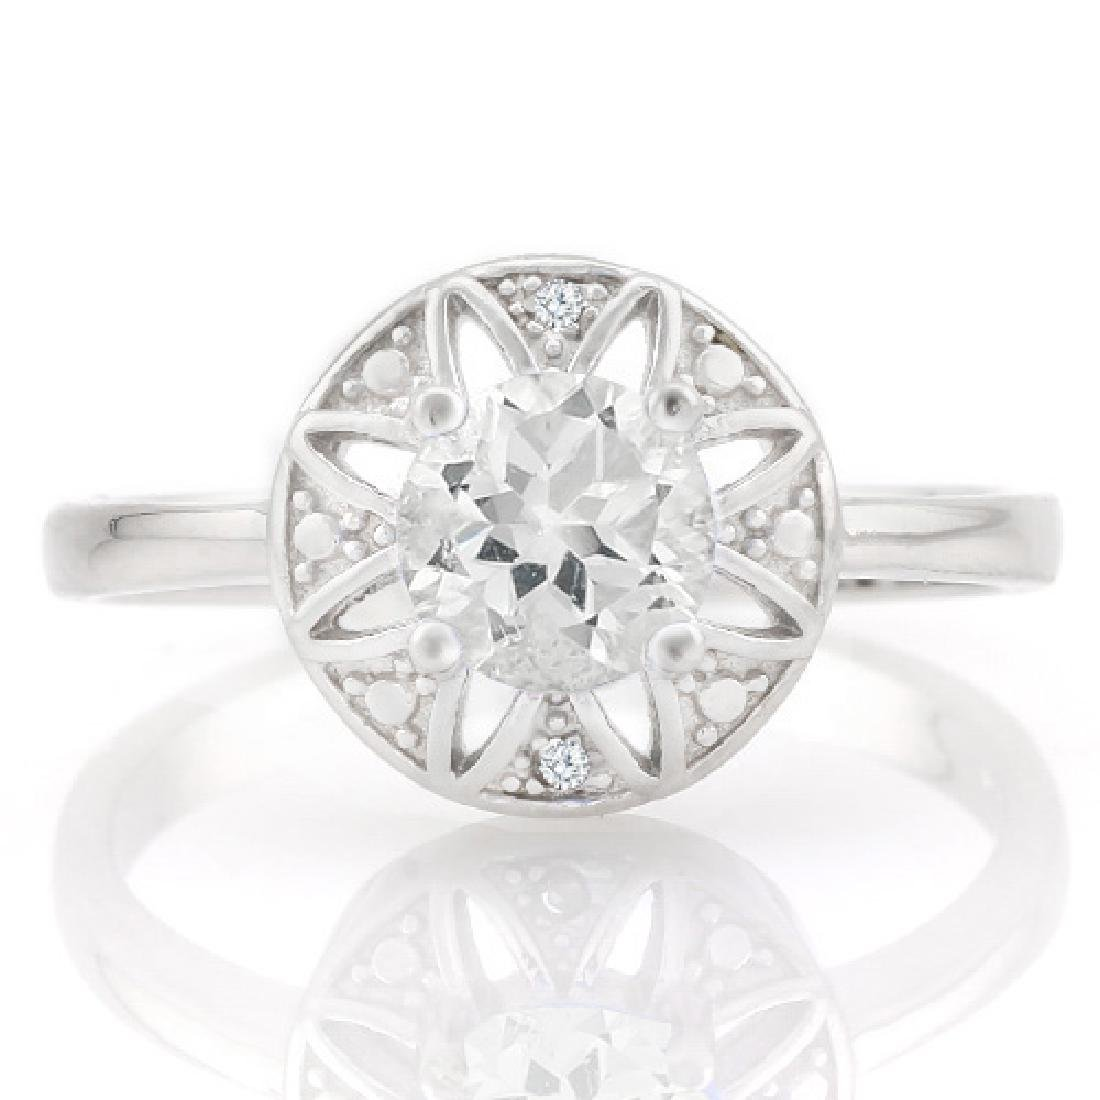 4/5 CARAT WHITE TOPAZ & GENUINE DIAMONDS 925 STERLING S